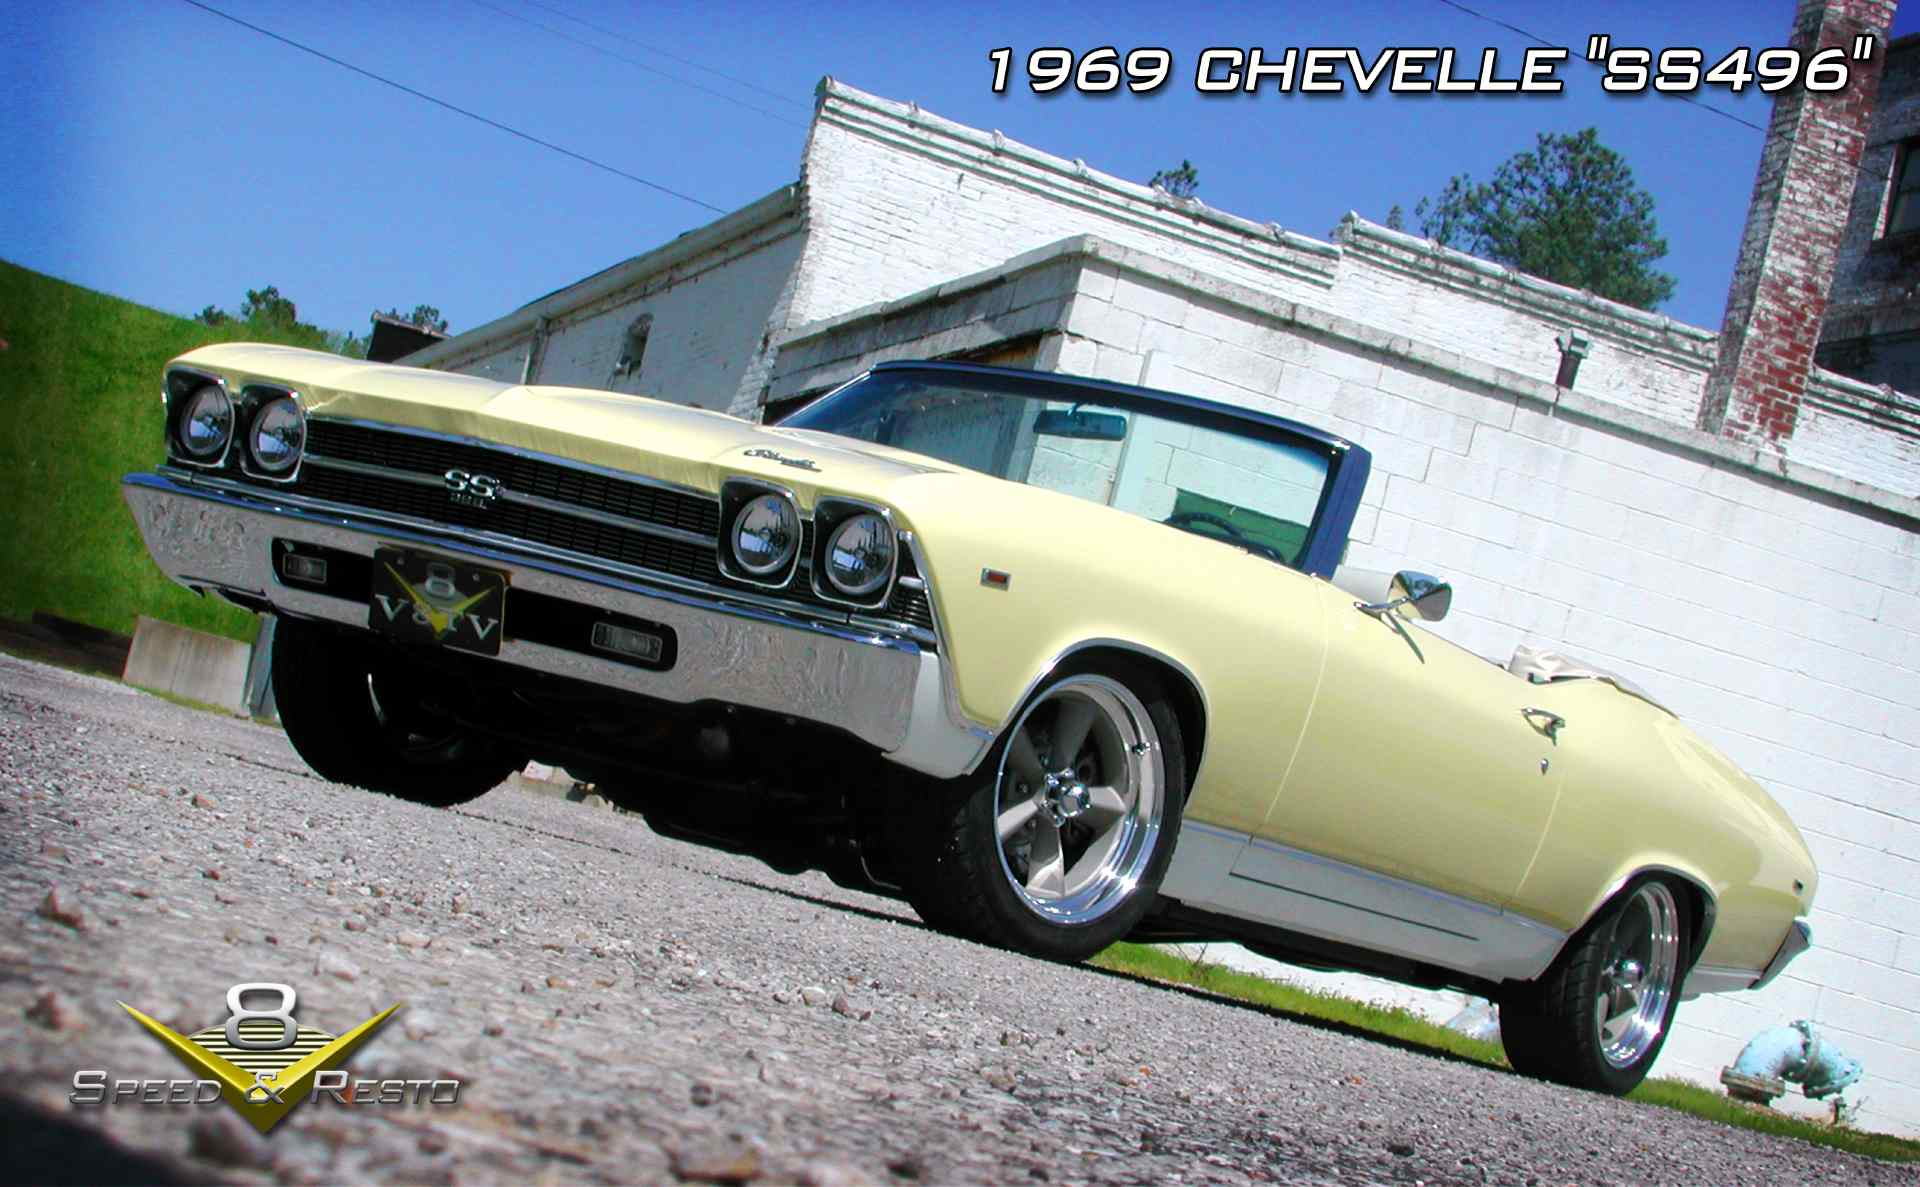 1969 Chevrolet Chevelle SS496 Restoration at V8 Speed & Resto Shop